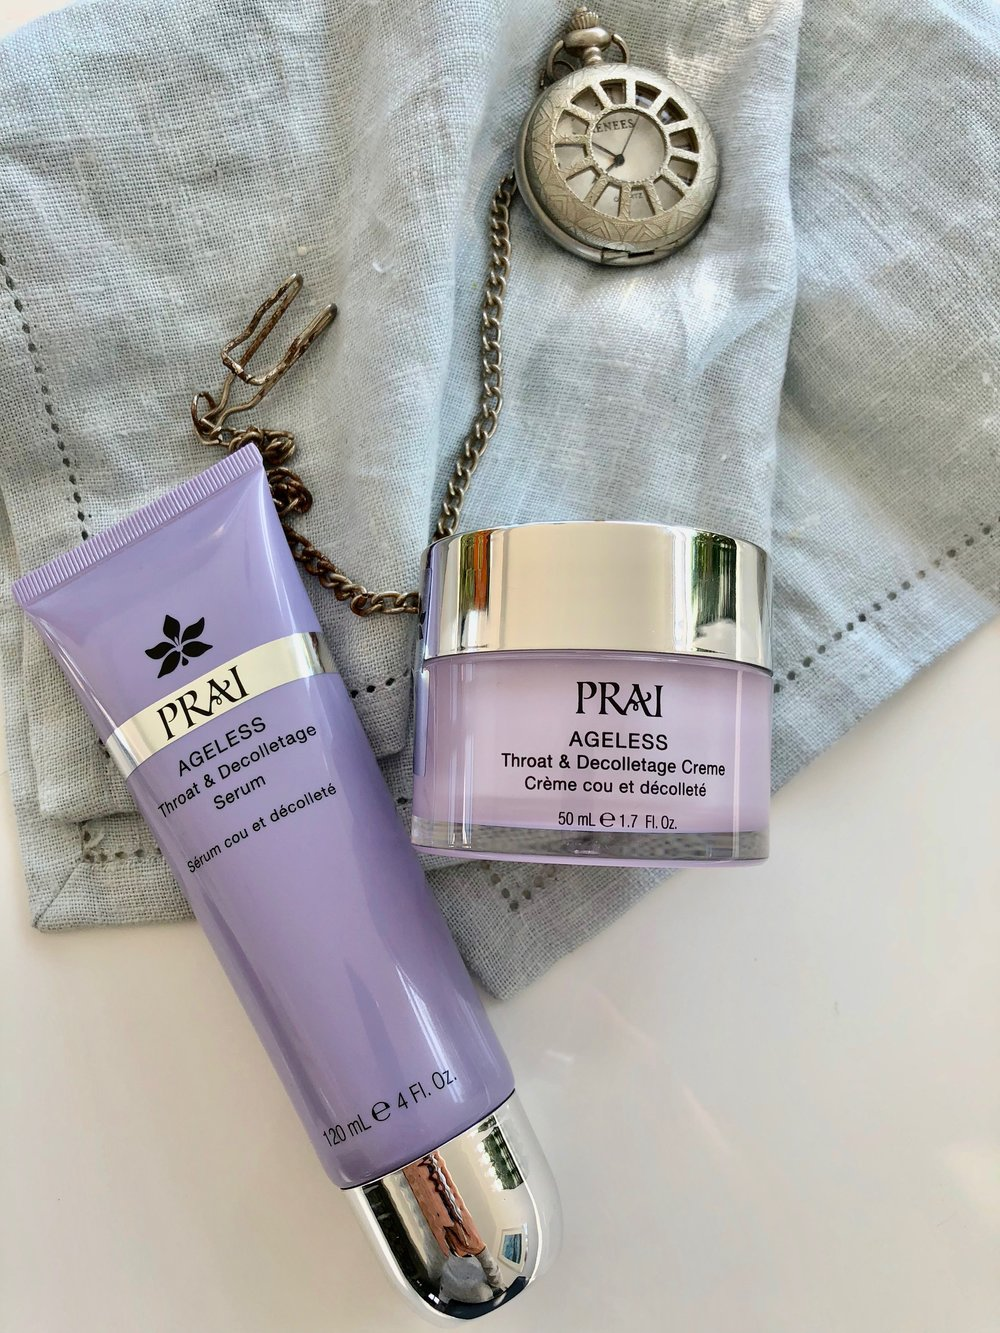 PRAI decolletage & throat cream.jpg